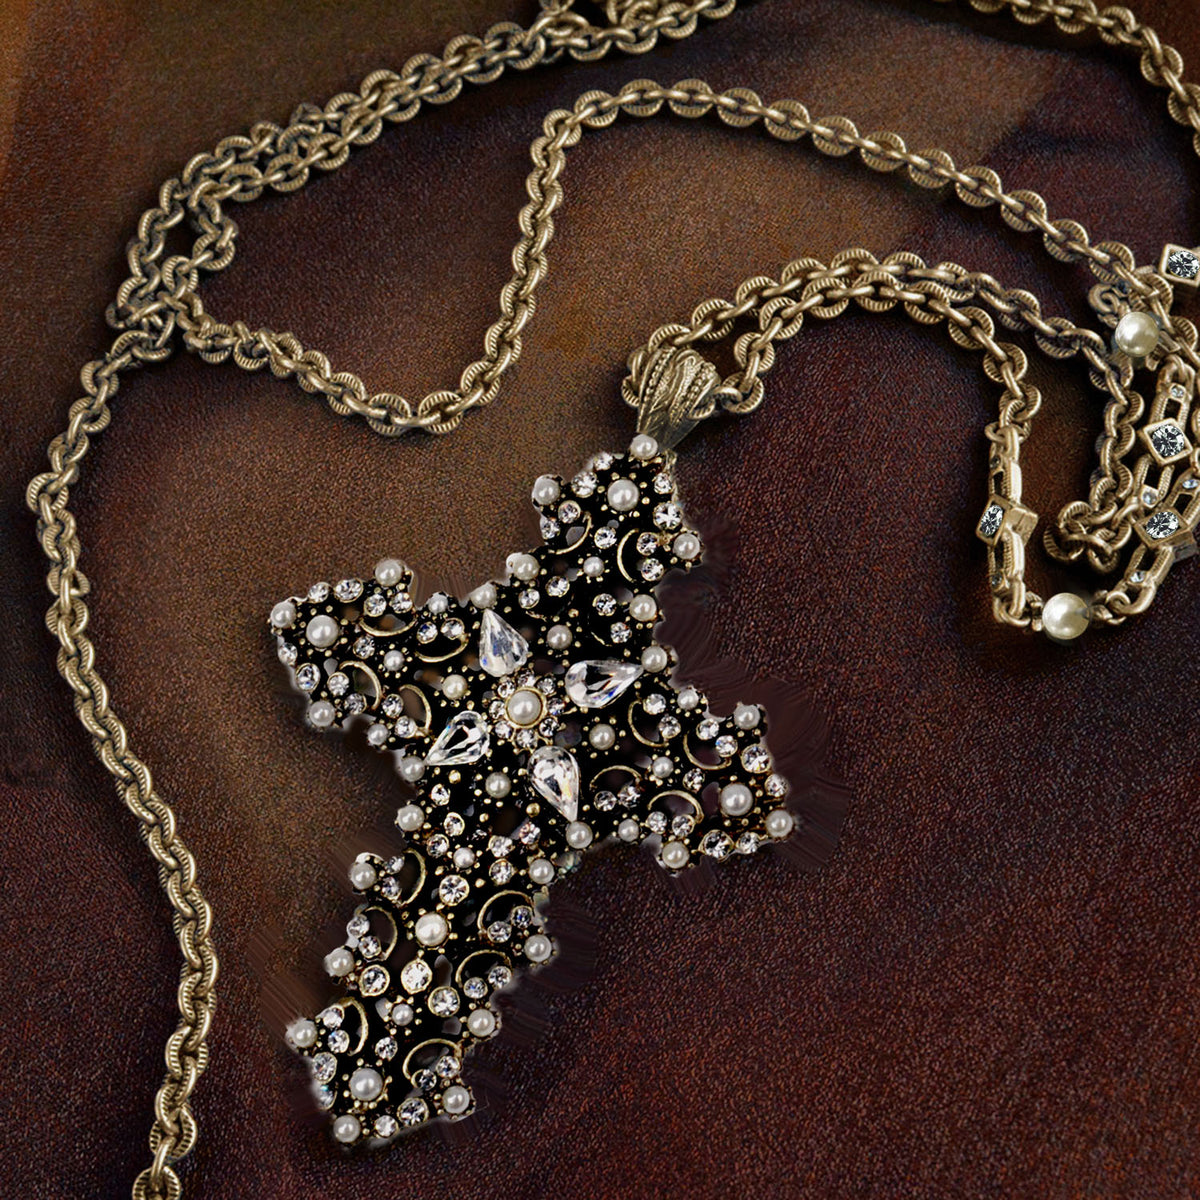 Lace Cross Necklace N842-PR